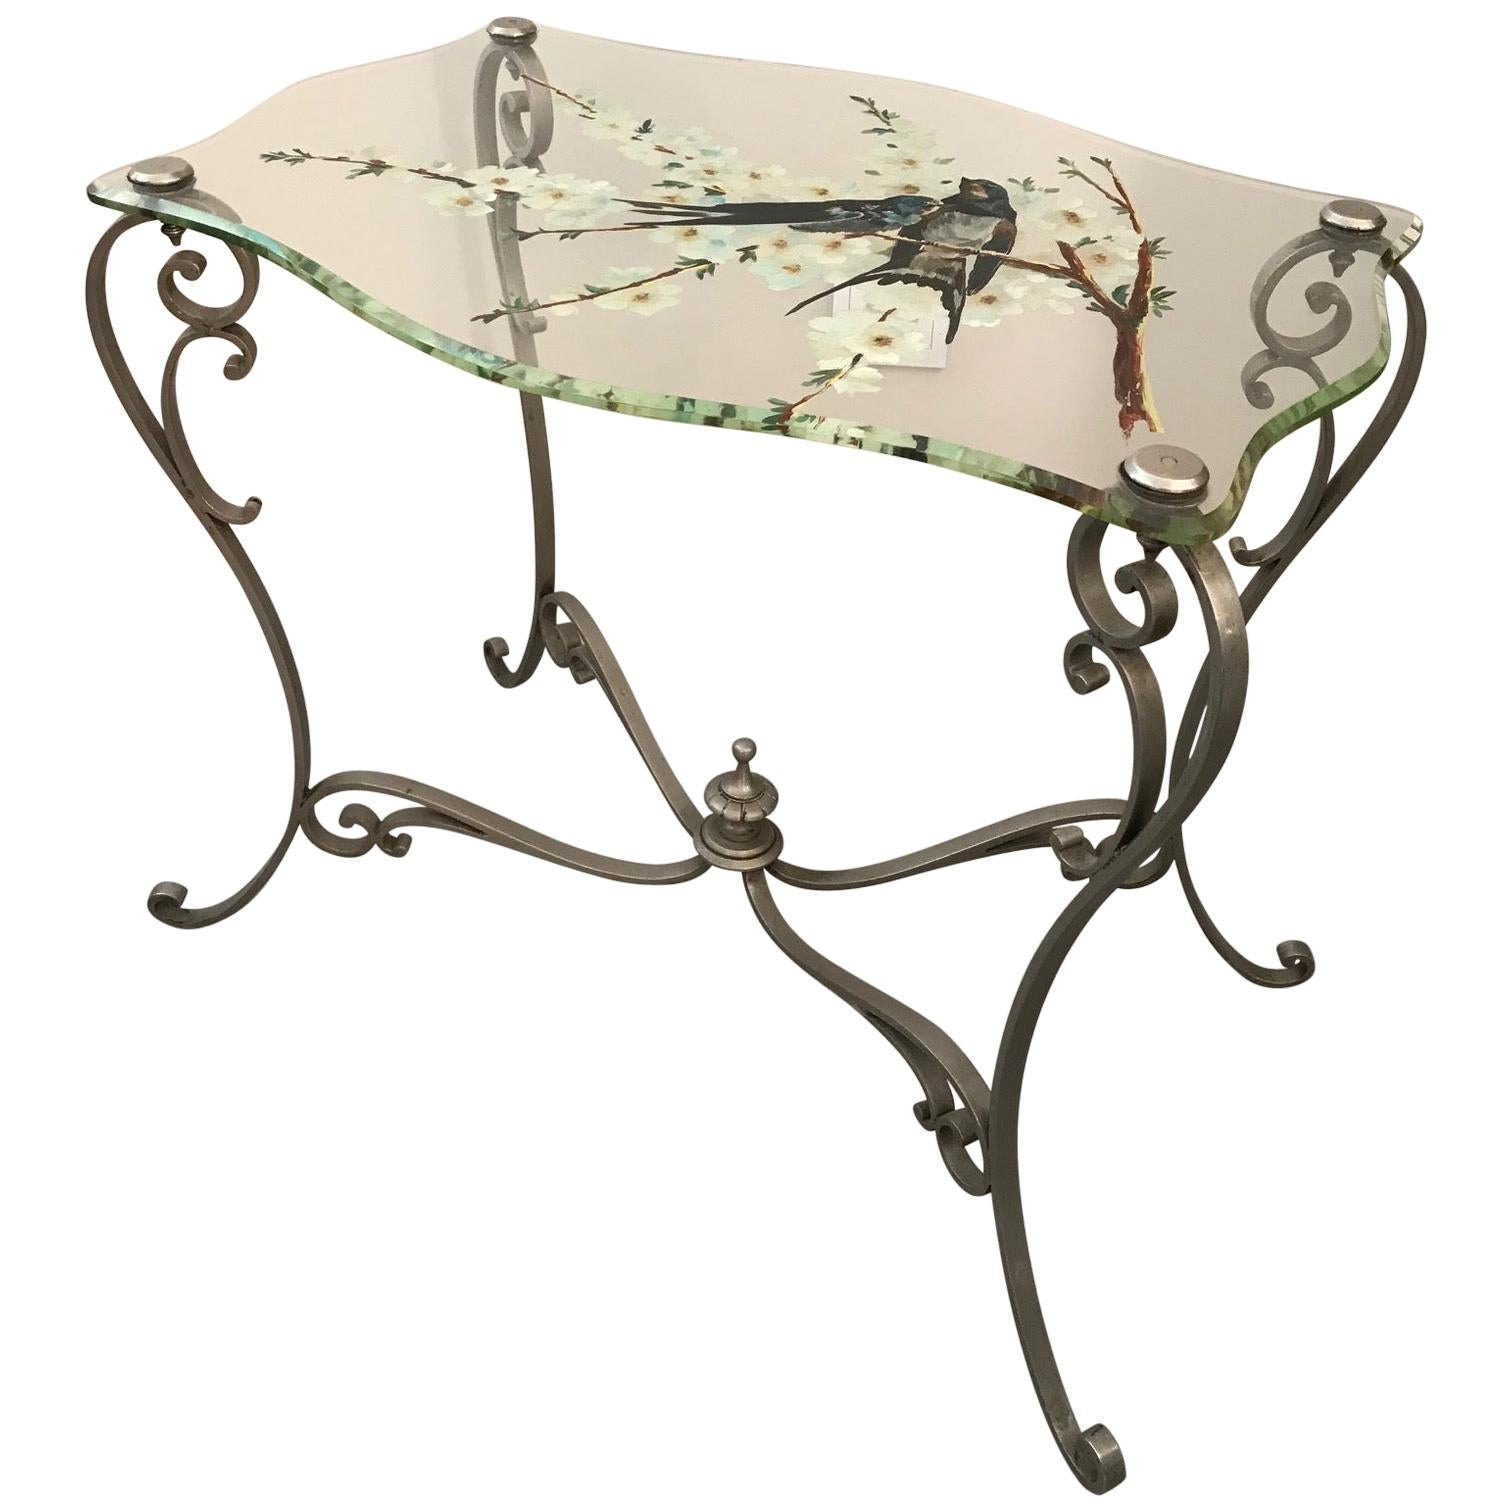 20th Century French Painted Glass and Metal Coffee Table, 1950s